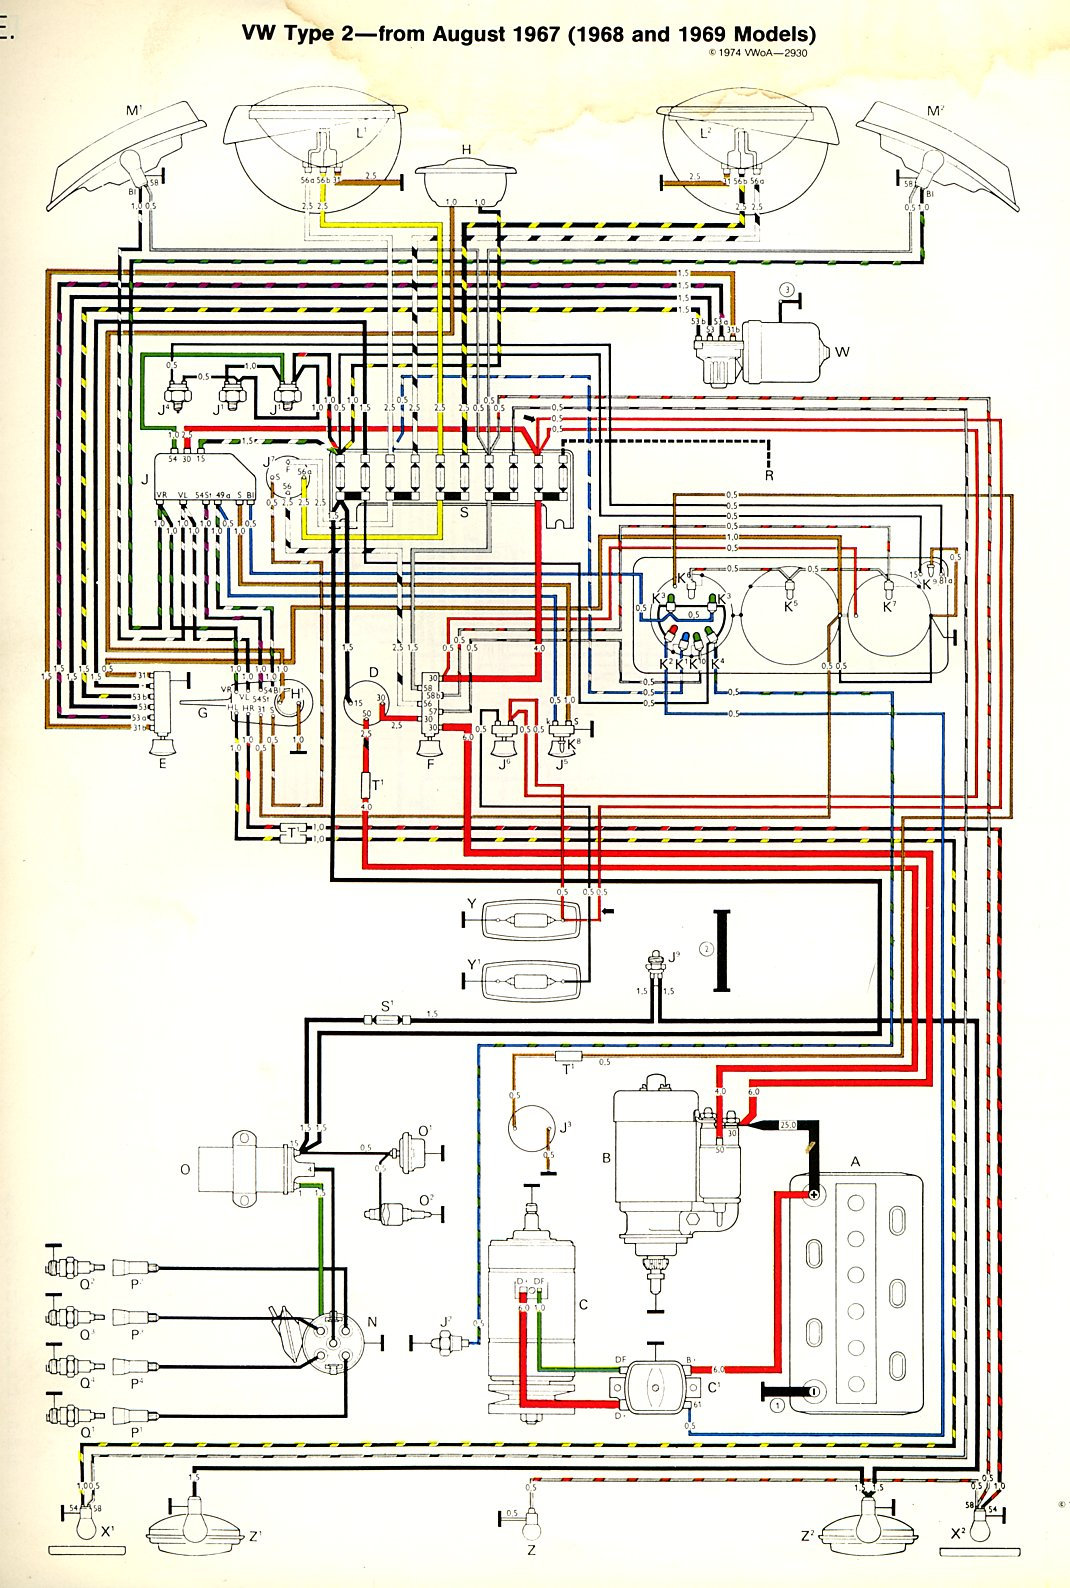 hight resolution of 1972 vw fuse diagram wiring diagram1972 vw fuse diagram